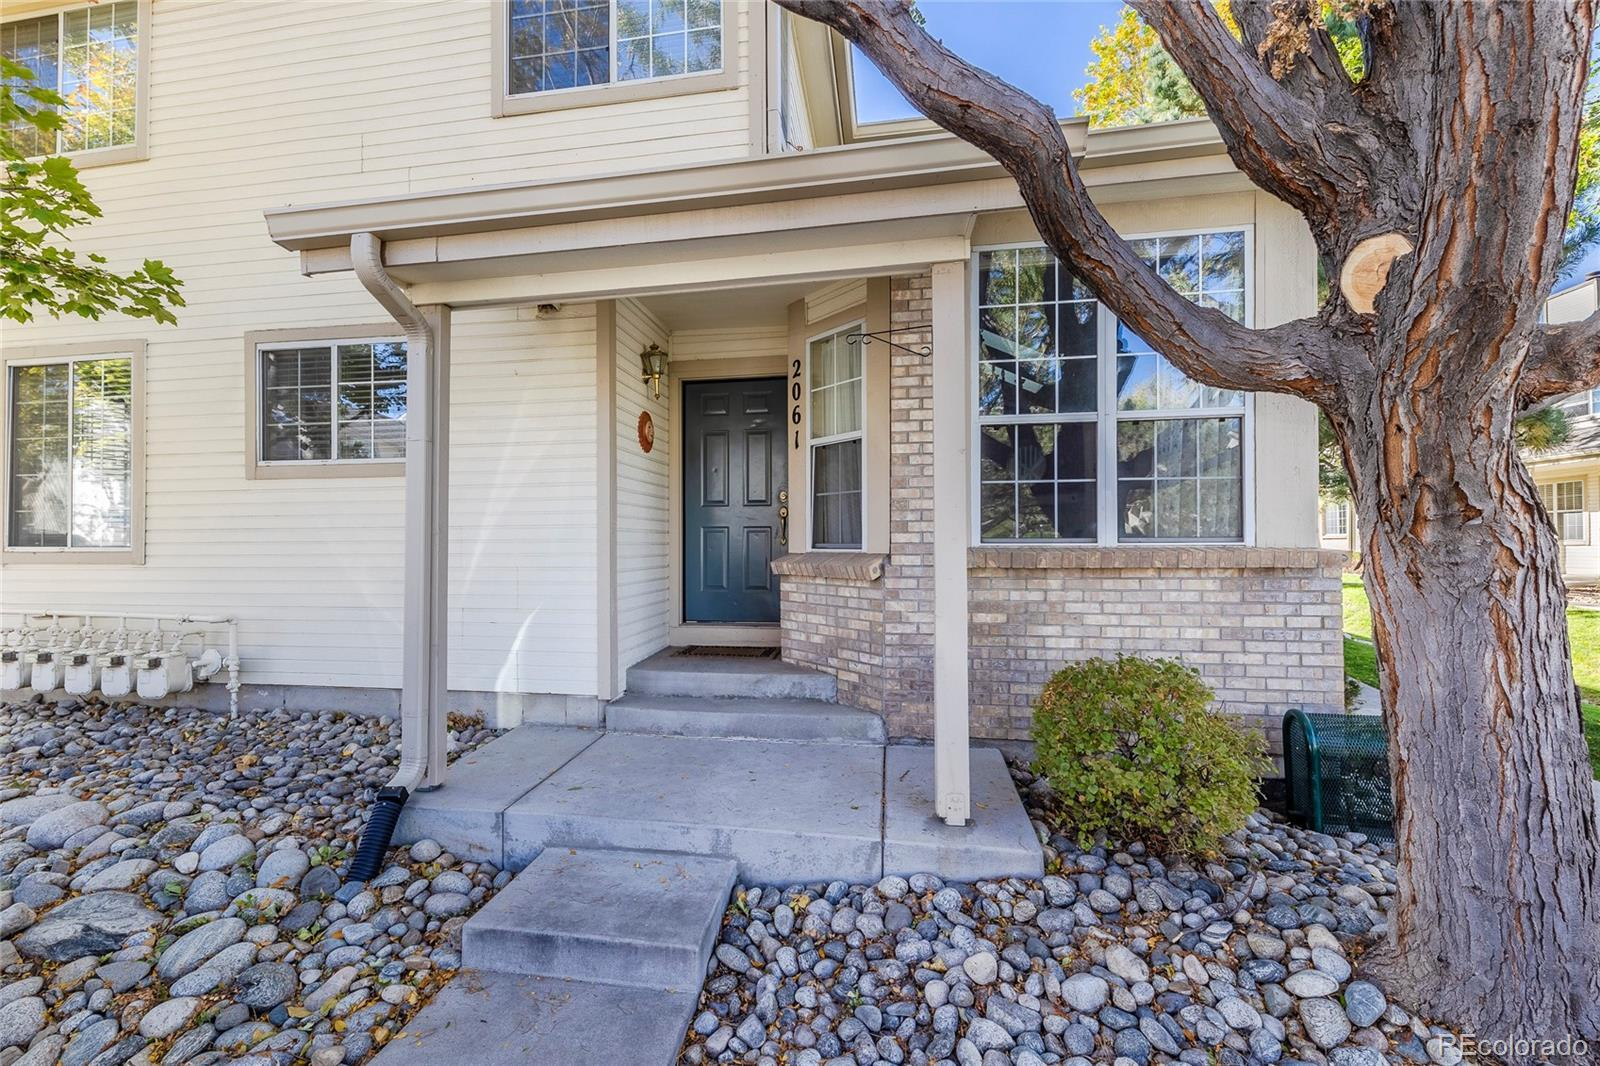 2061 S Xenia Way, Denver, CO 80231 - #: 3341039